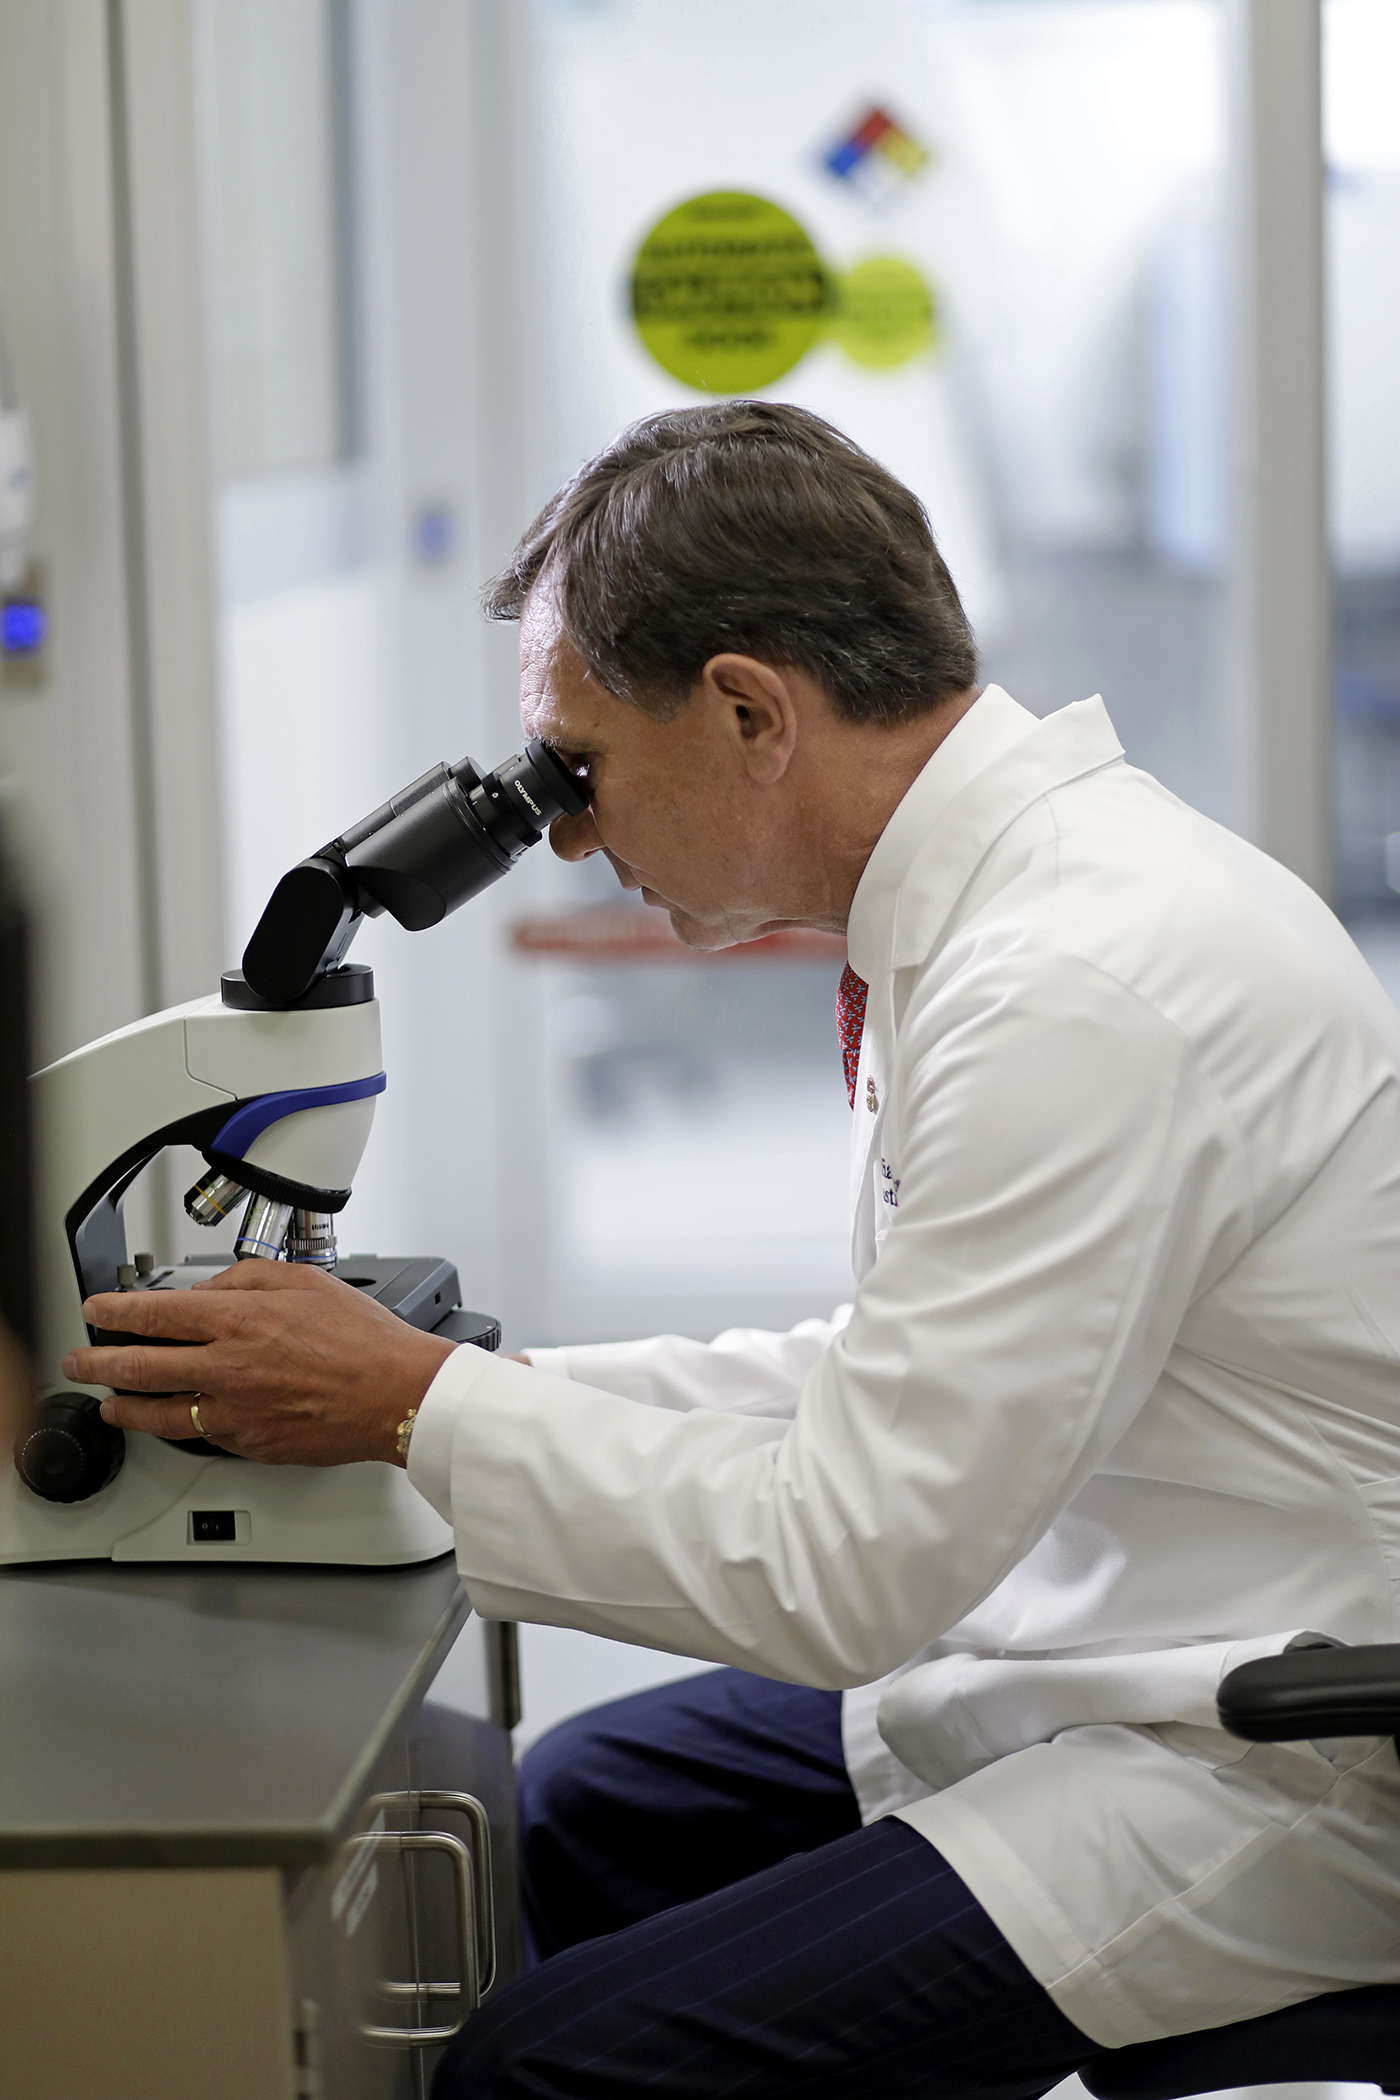 Dr. Guenther Koehne, Miami Cancer Institute, looking through microscope